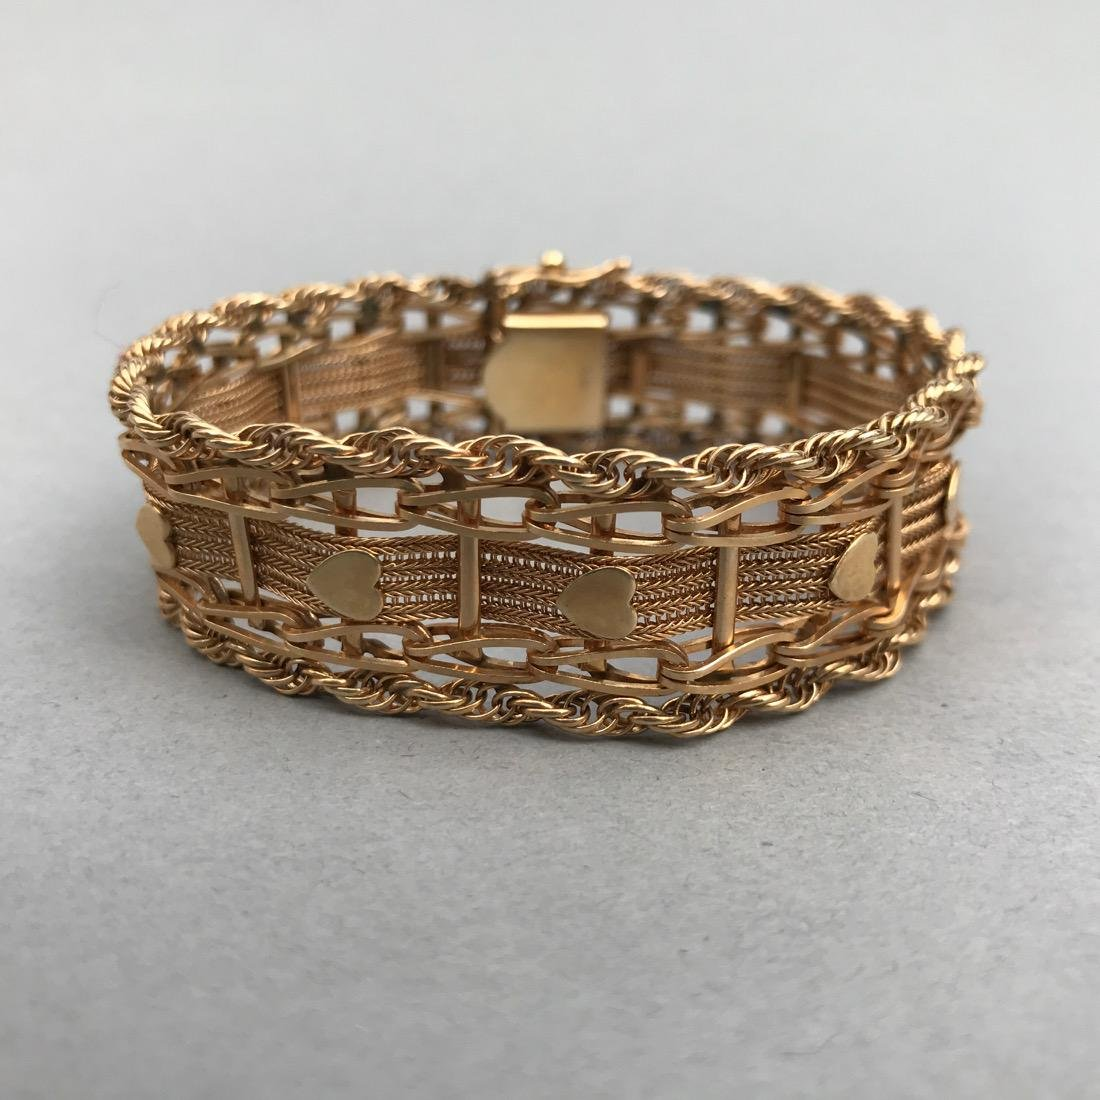 Intricate 14K Gold Bracelet